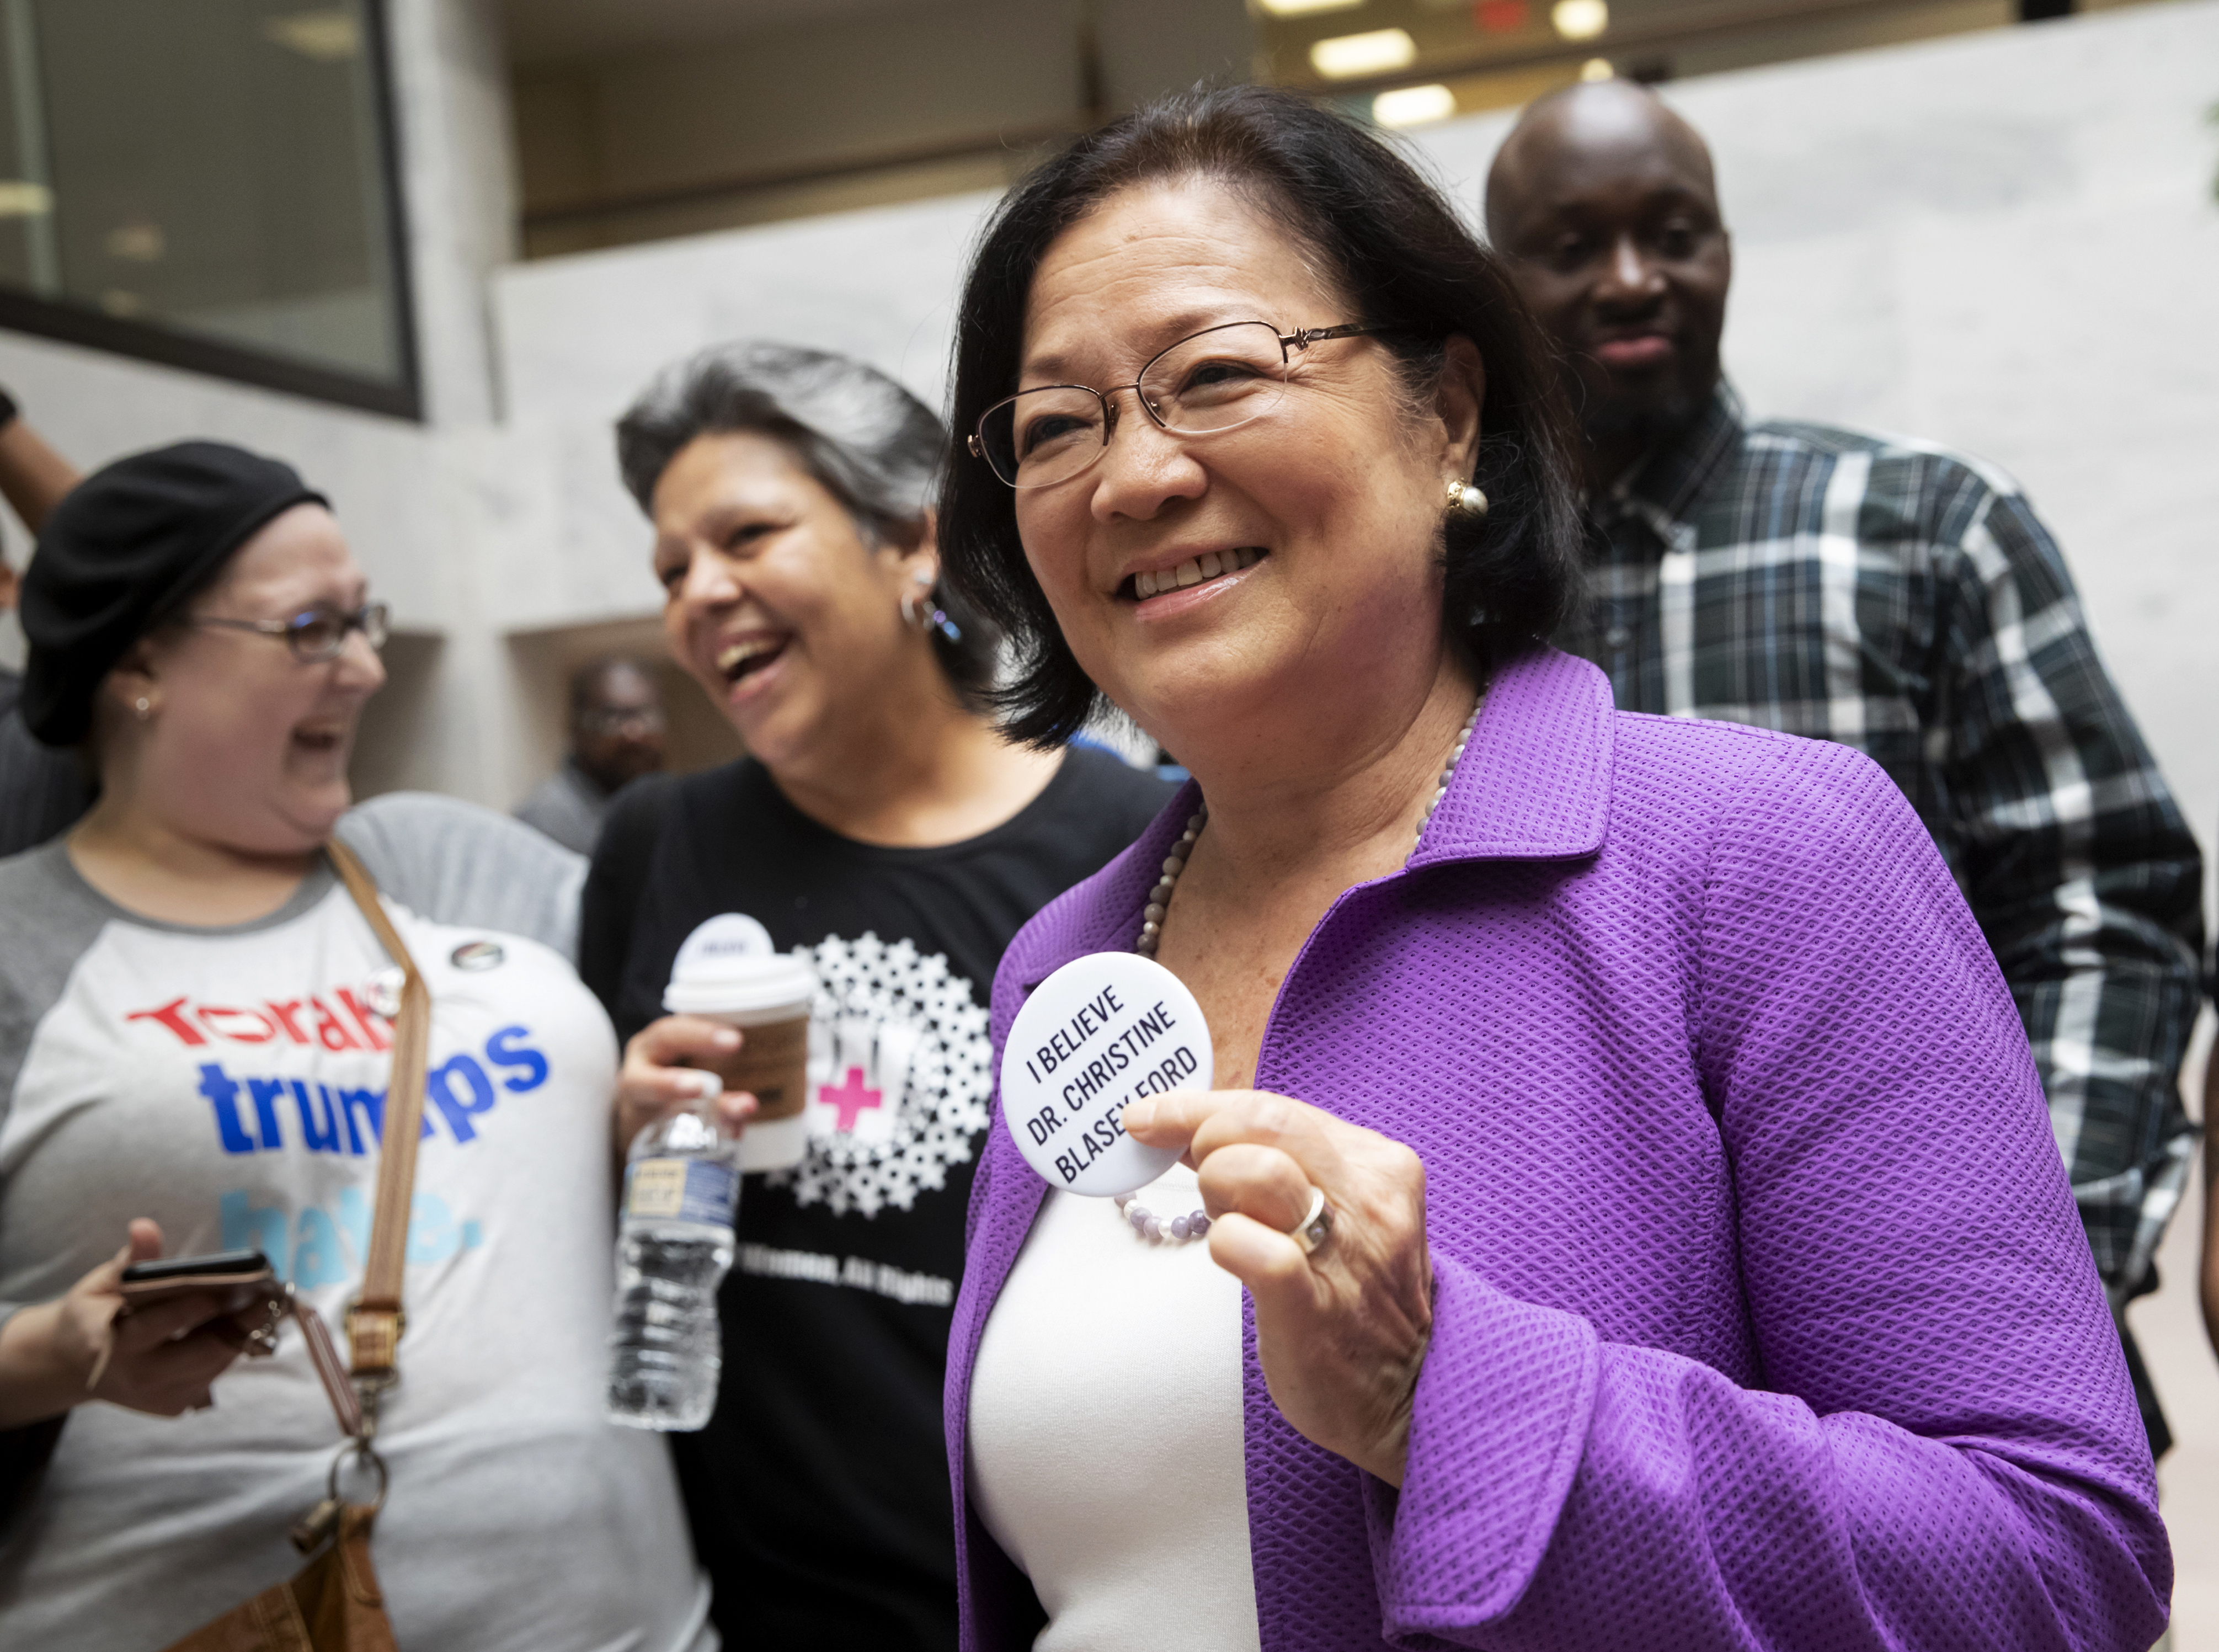 Sen. Mazie Hirono, D-Hawaii, a member of the Senate Judiciary Committee, is welcomed by protesters opposed to President Donald Trump´s Supreme Court nominee, Brett Kavanaugh, as they demonstrate in the Hart Senate Office Building on Capitol Hill last month.